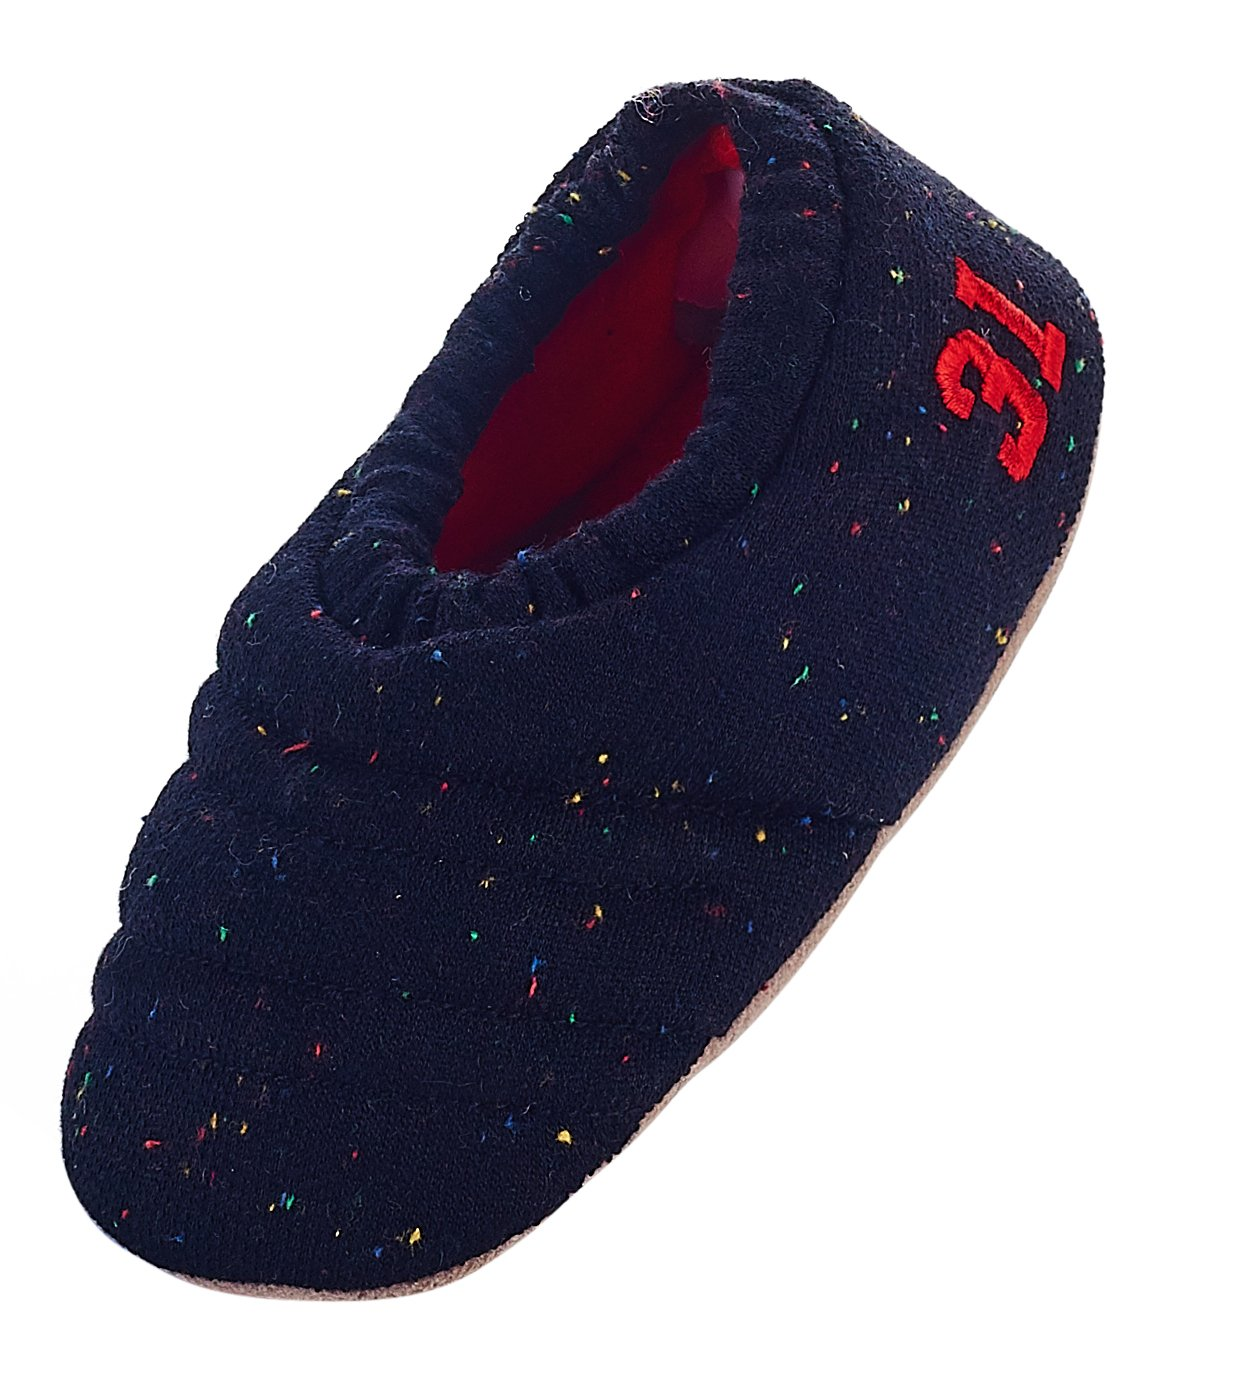 LA PLAGE Toddler Warm Soft Non Slip House Indoor Slippers Size Toddler 9-10 US Black